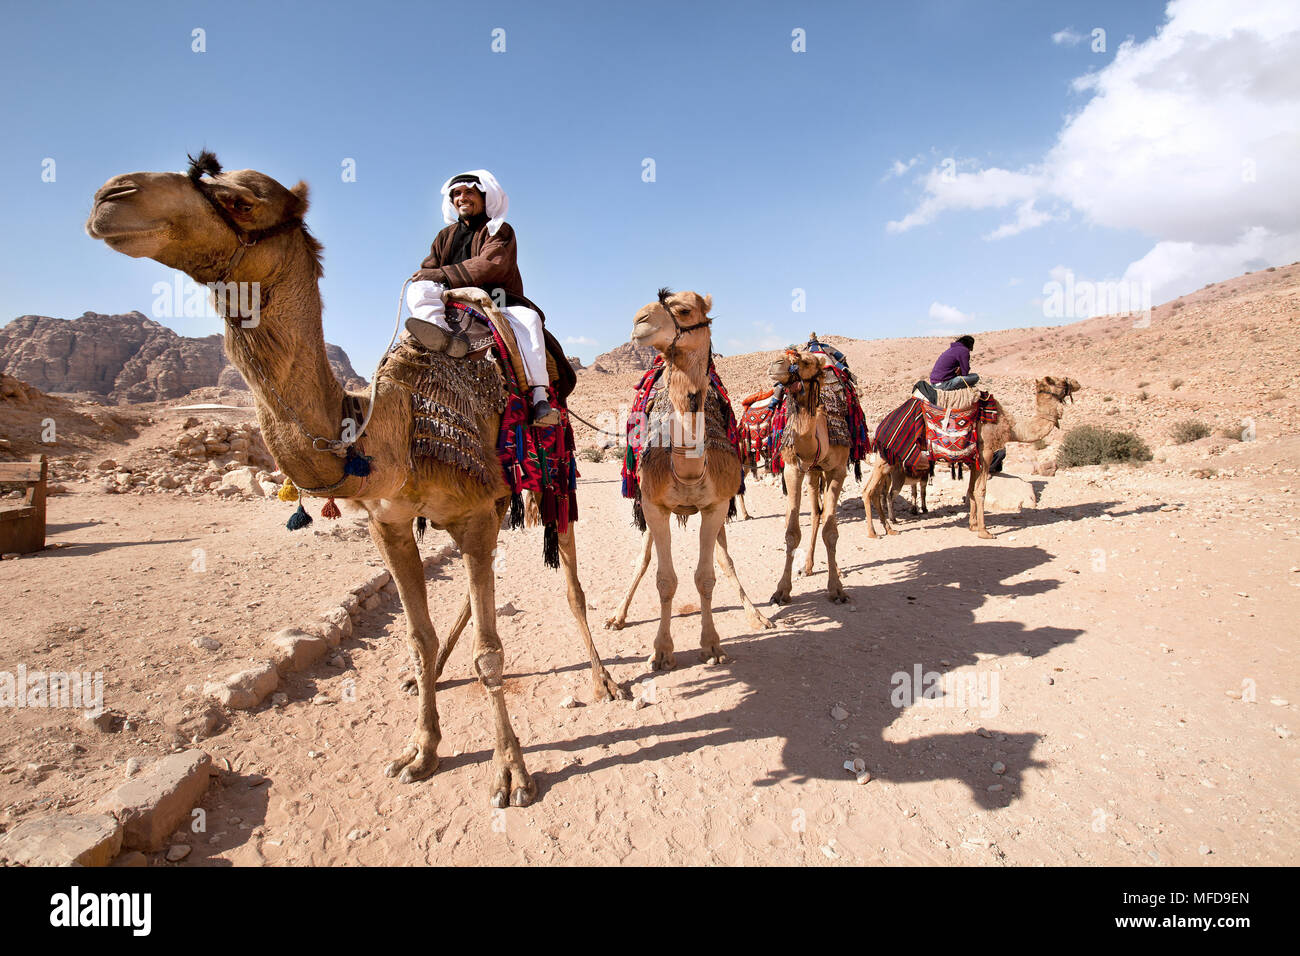 Portrait of a wealthy Bedouin with his camels in a desert - Stock Image